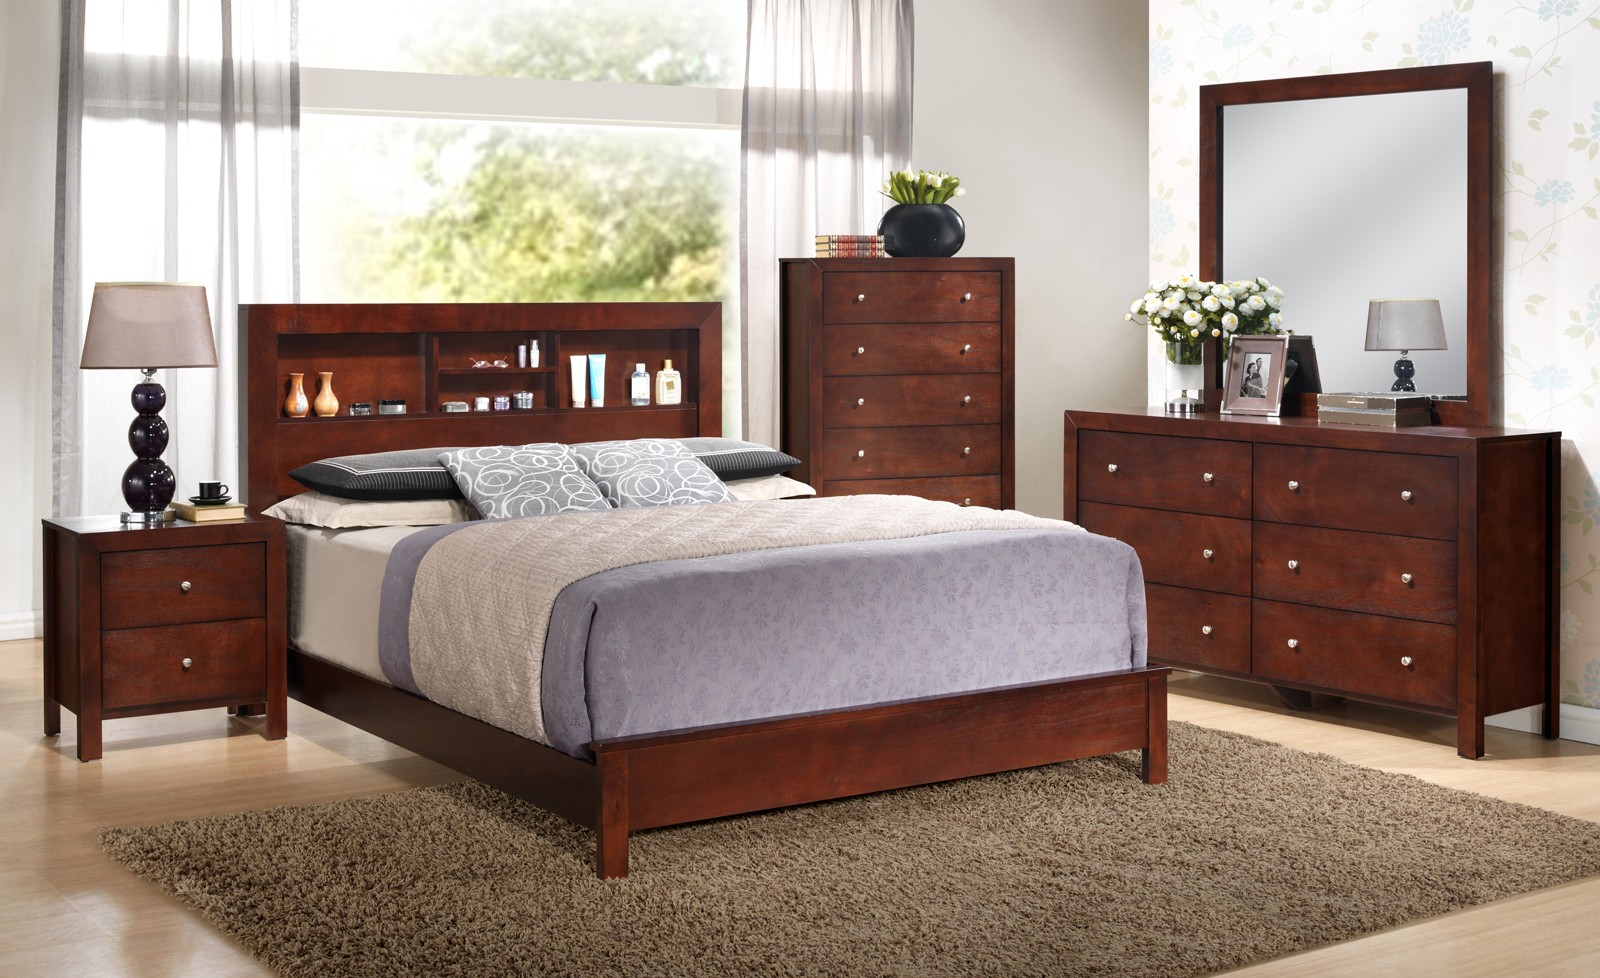 Glory Glory Furniture G2400 Queen Bookcase Headboard Bed In Cherry